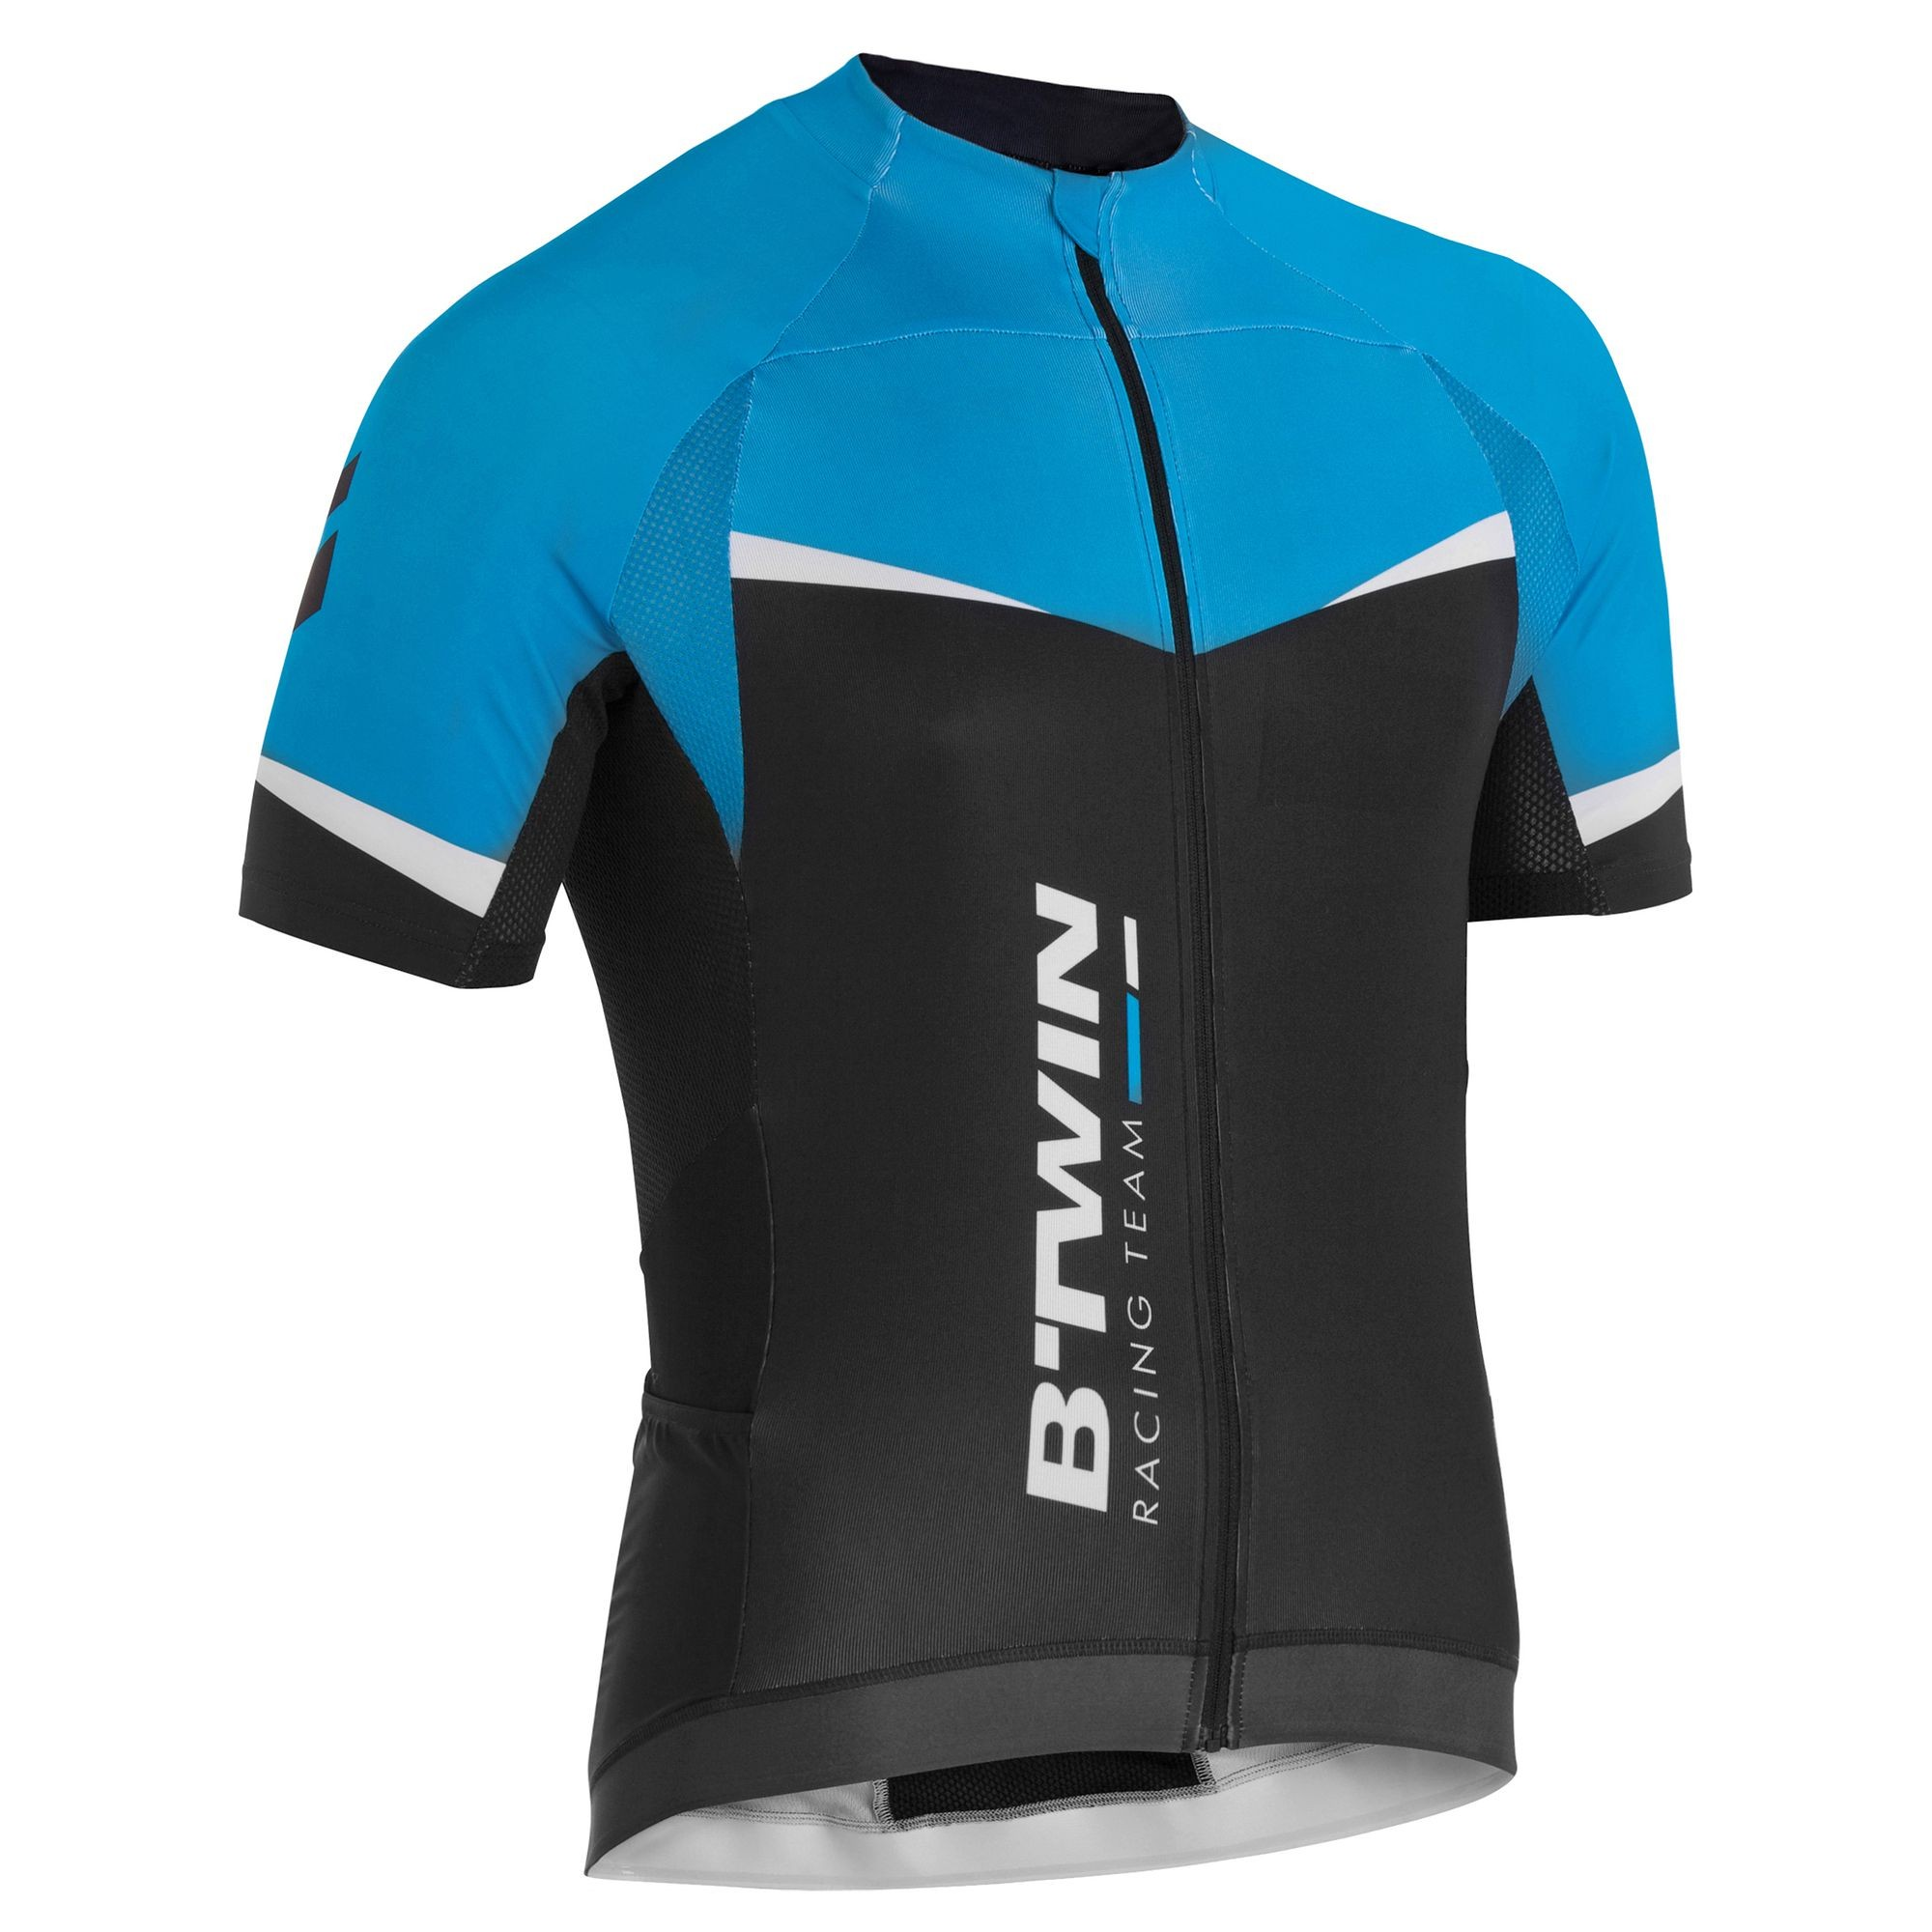 Cycling jerseys — everything you need to know  5e64fb13b